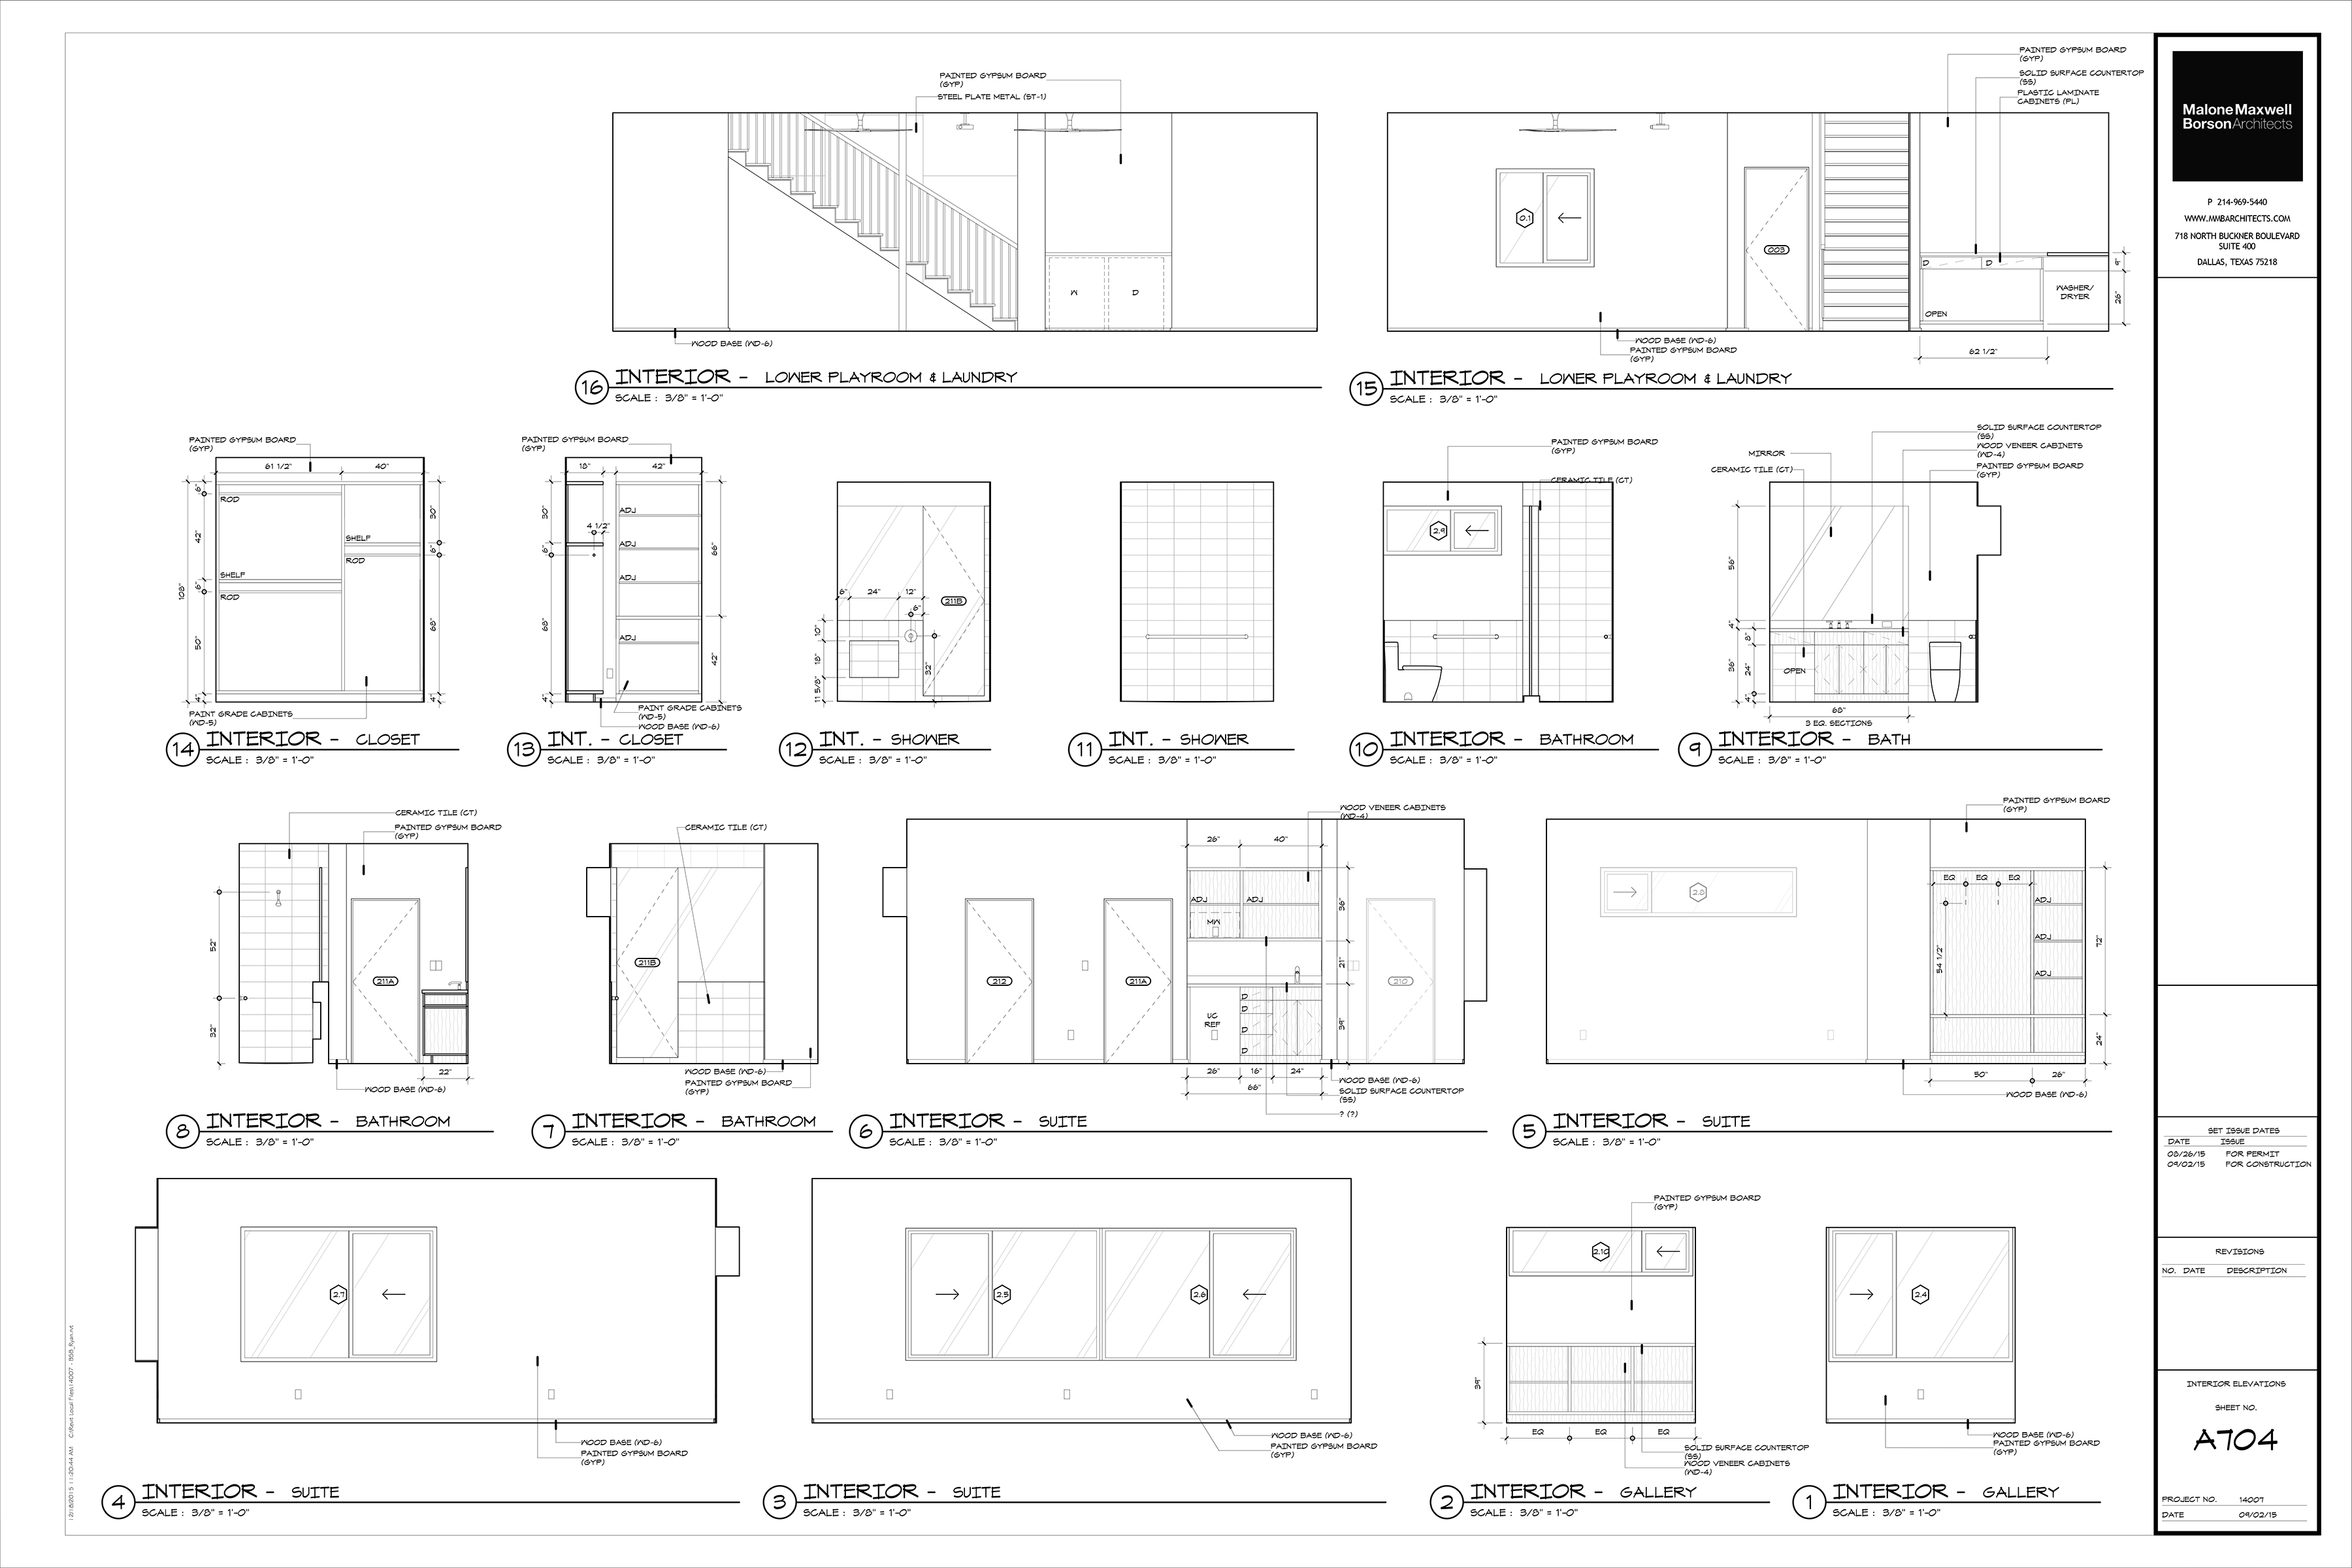 100 How To Read Floor Plans Symbols About Best 25